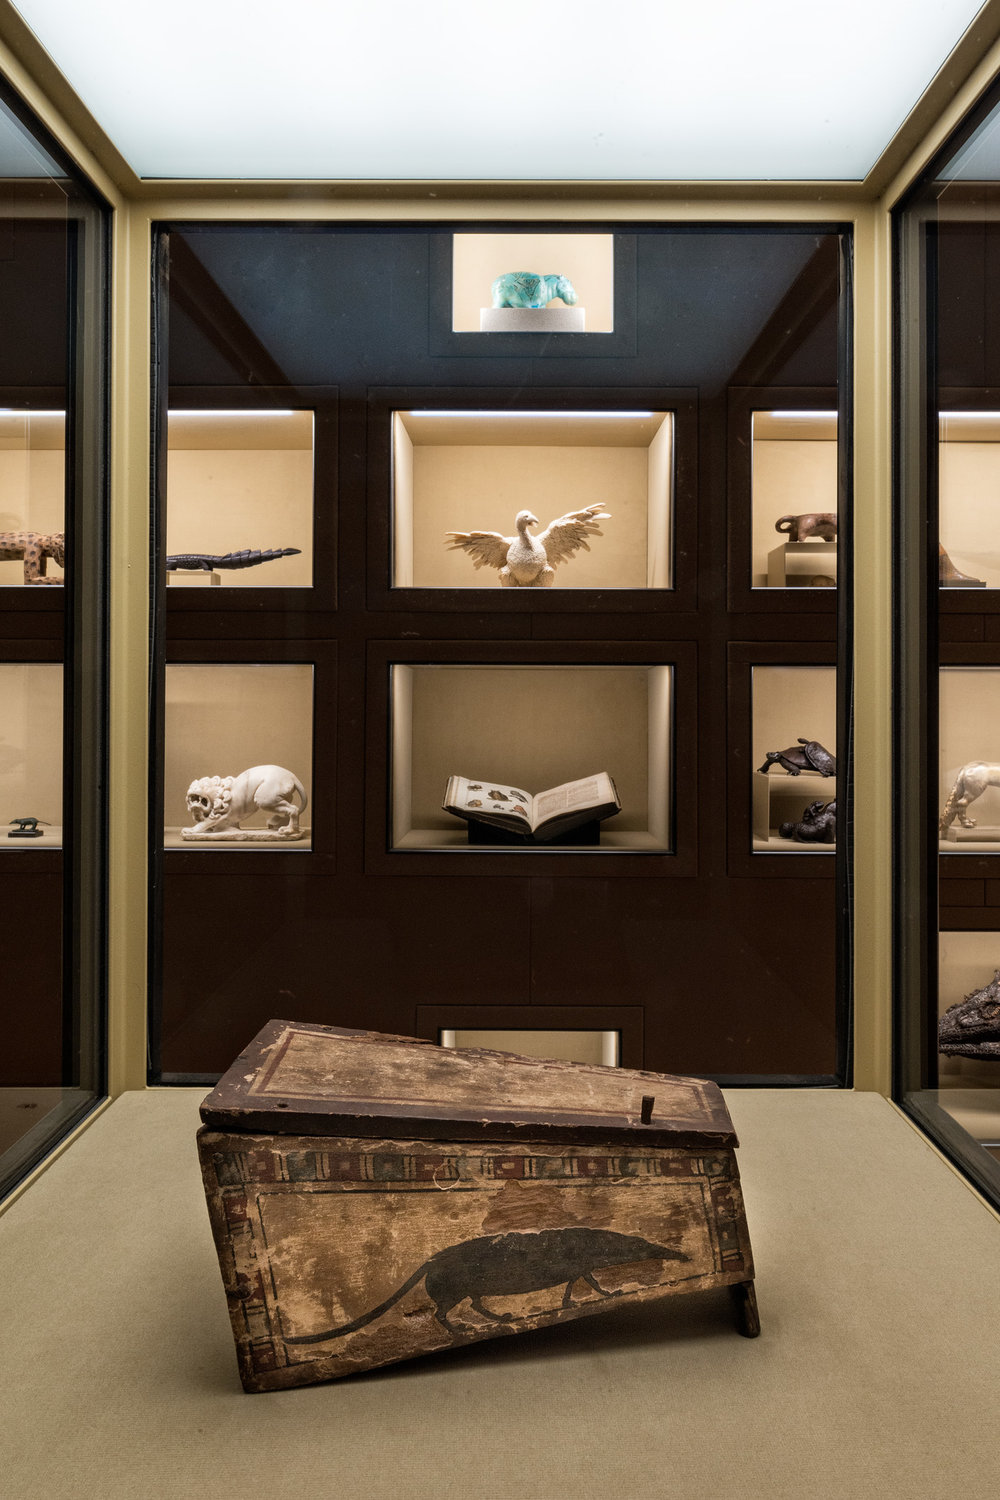 Spitzmaus coffin Photo: © KHM-Museumsverband